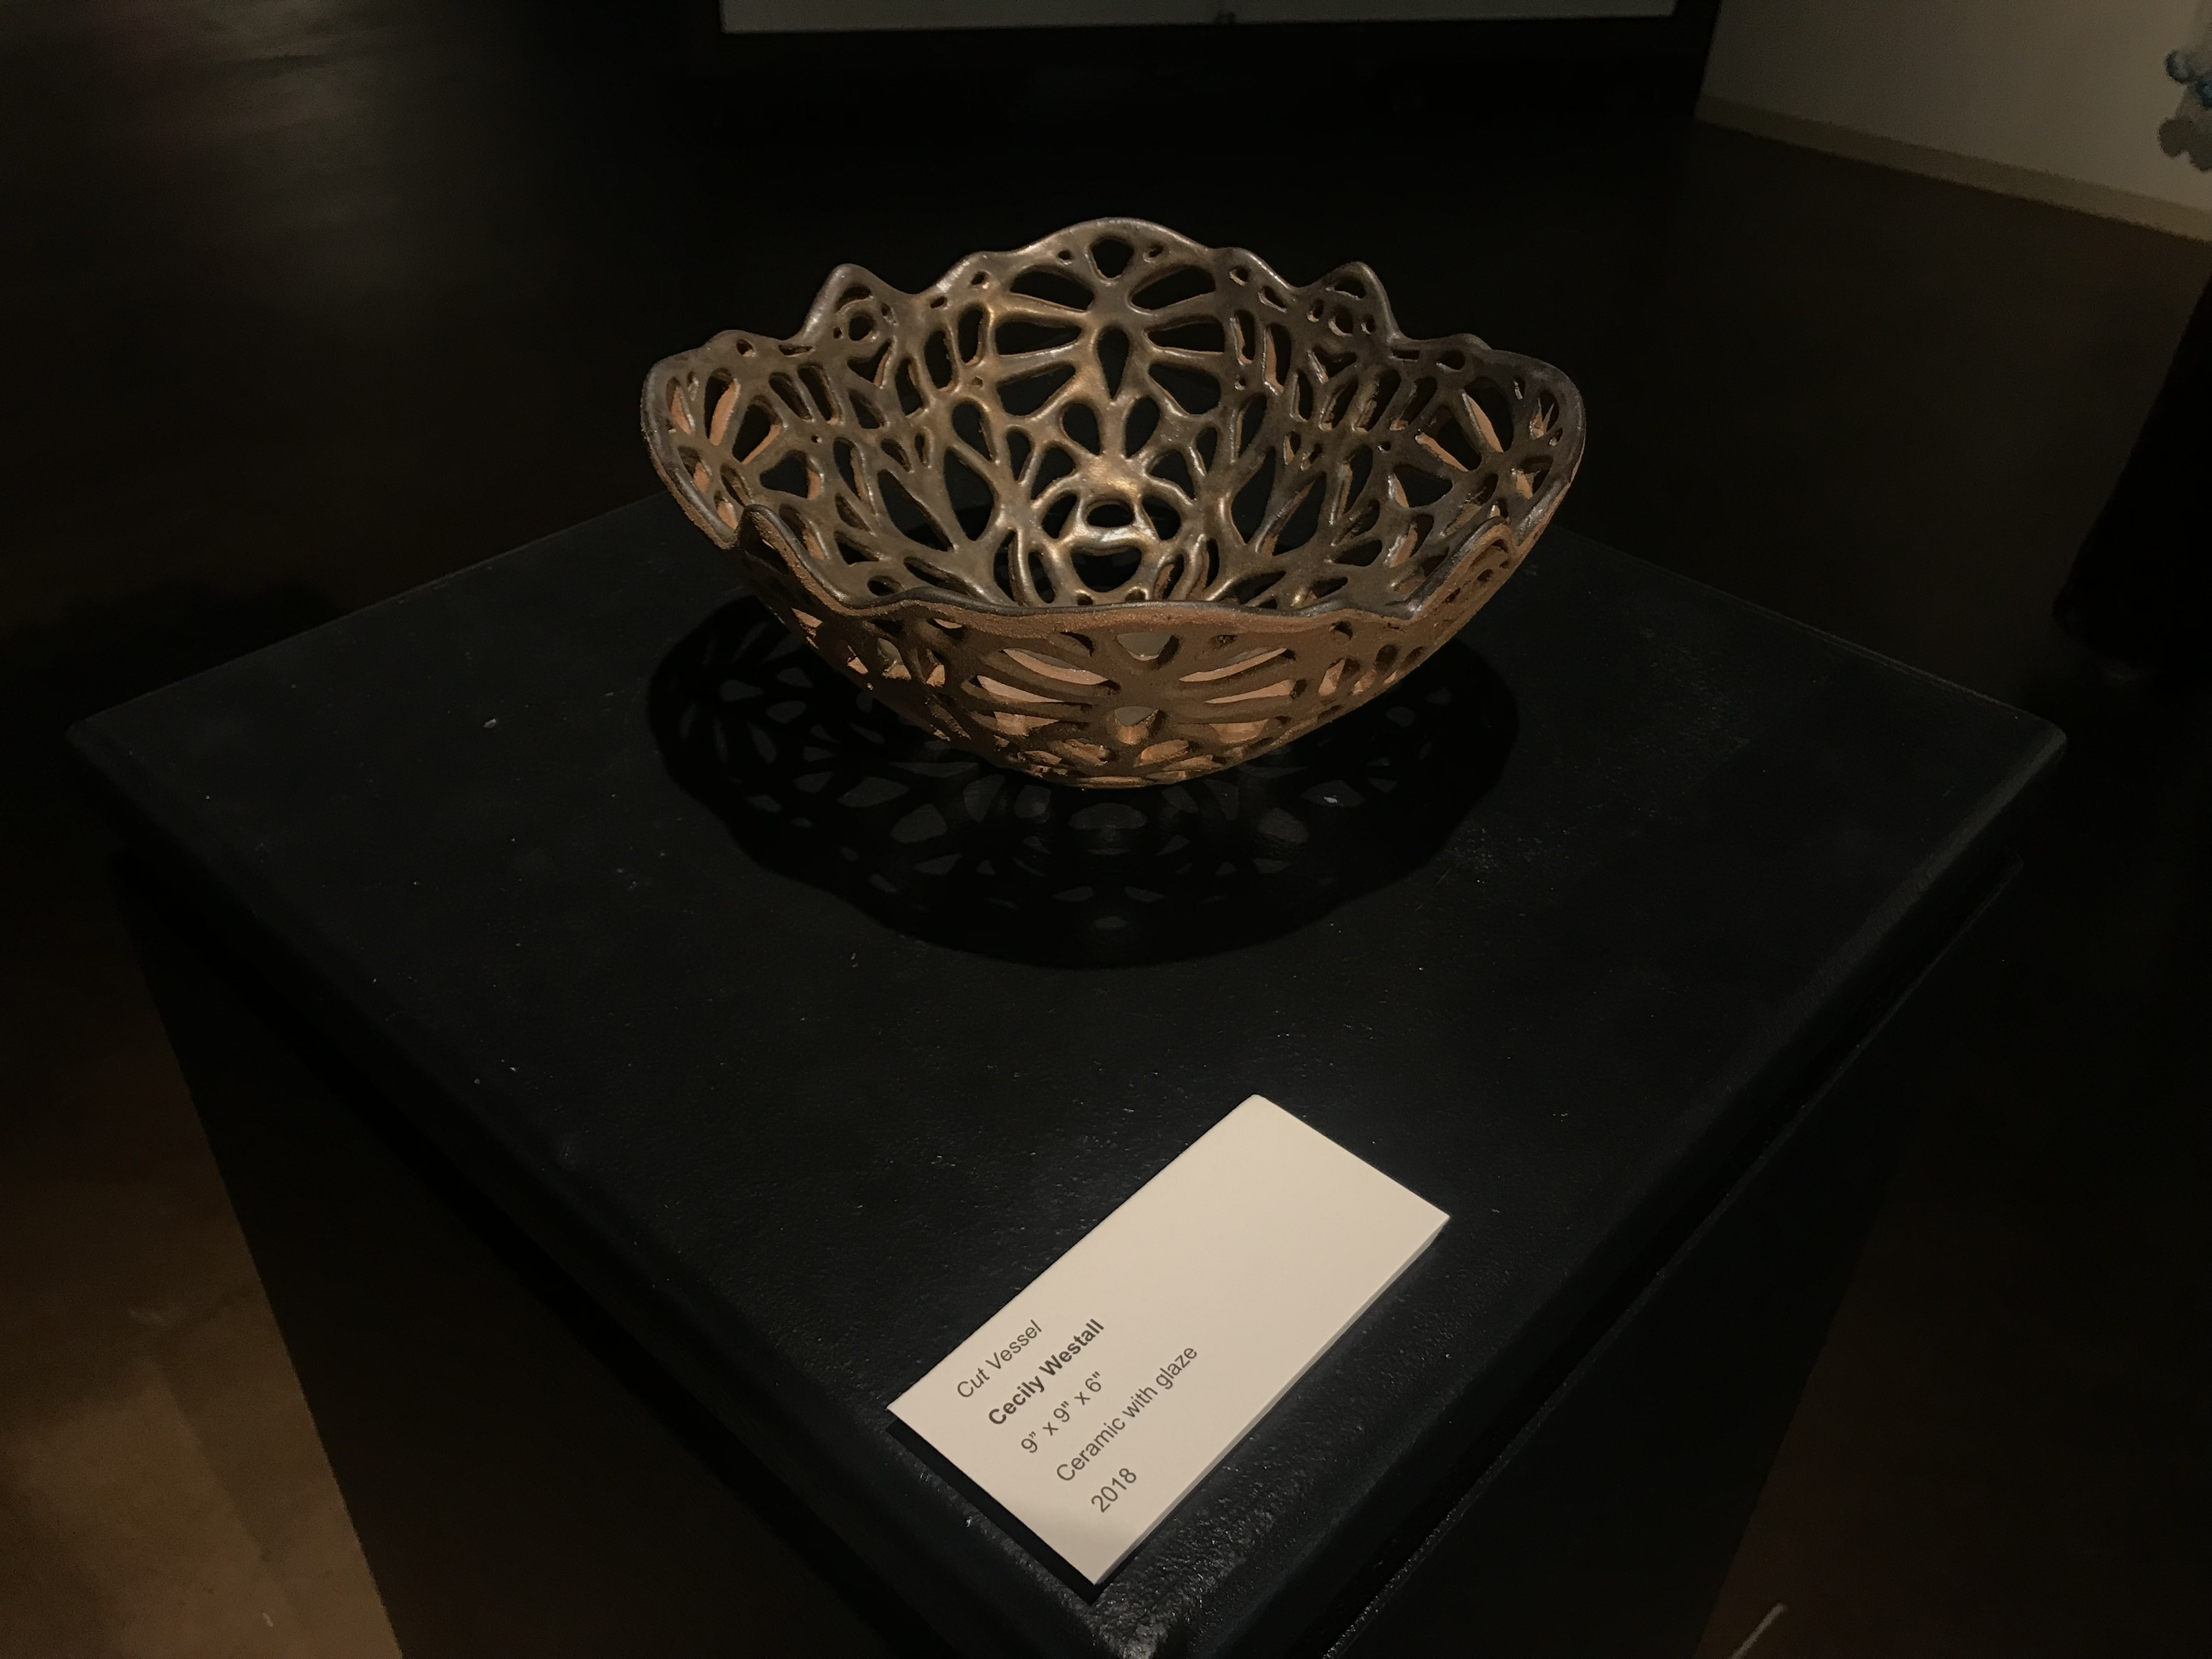 Cut Vessel by Cecily Wastall